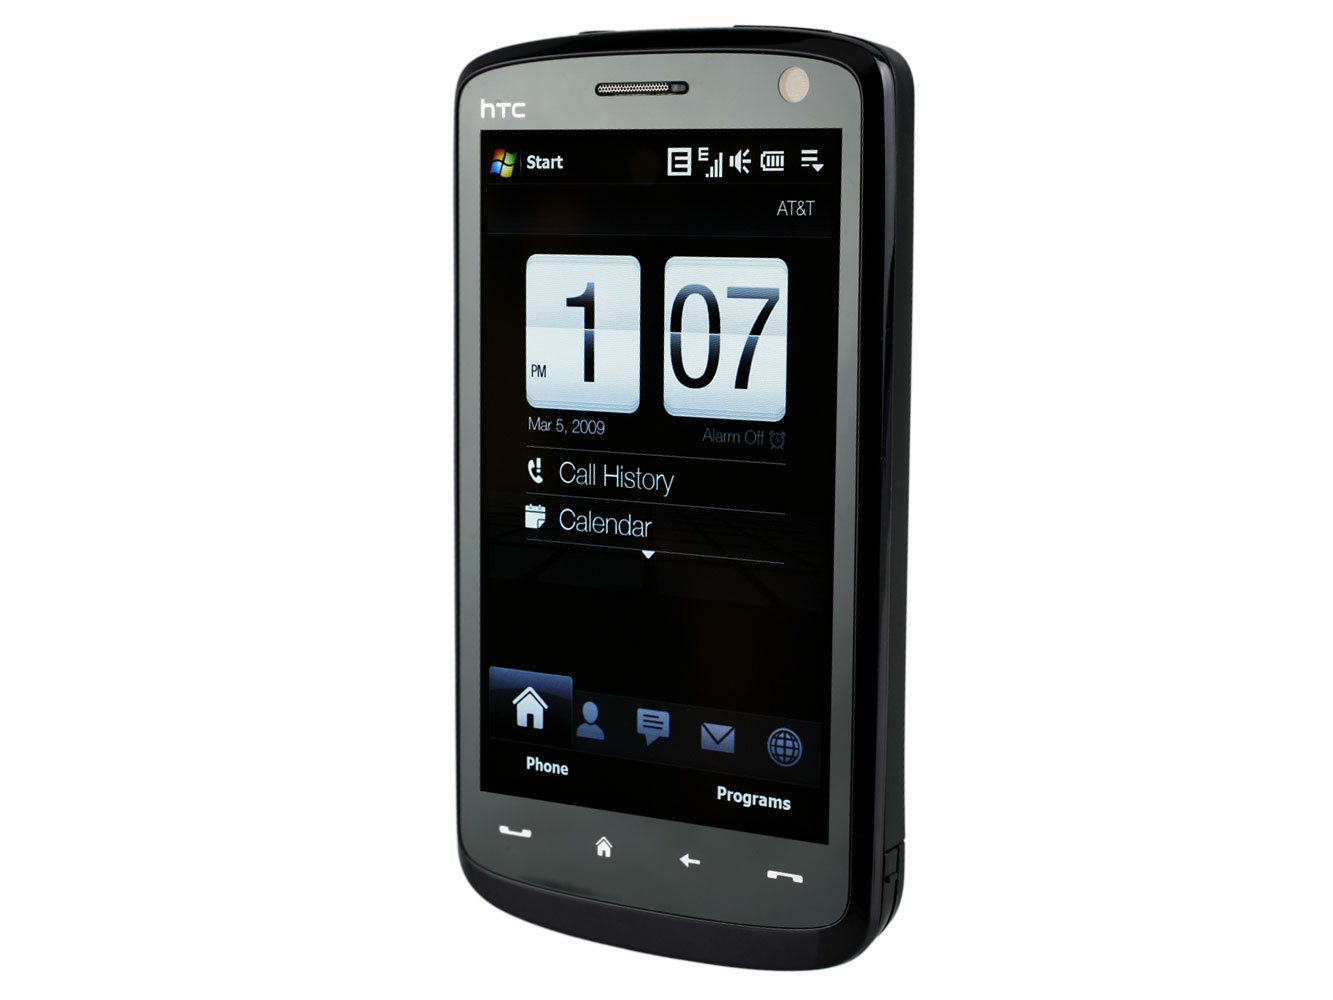 Htc mobile Software - Free Download htc mobile - Top 4 Download